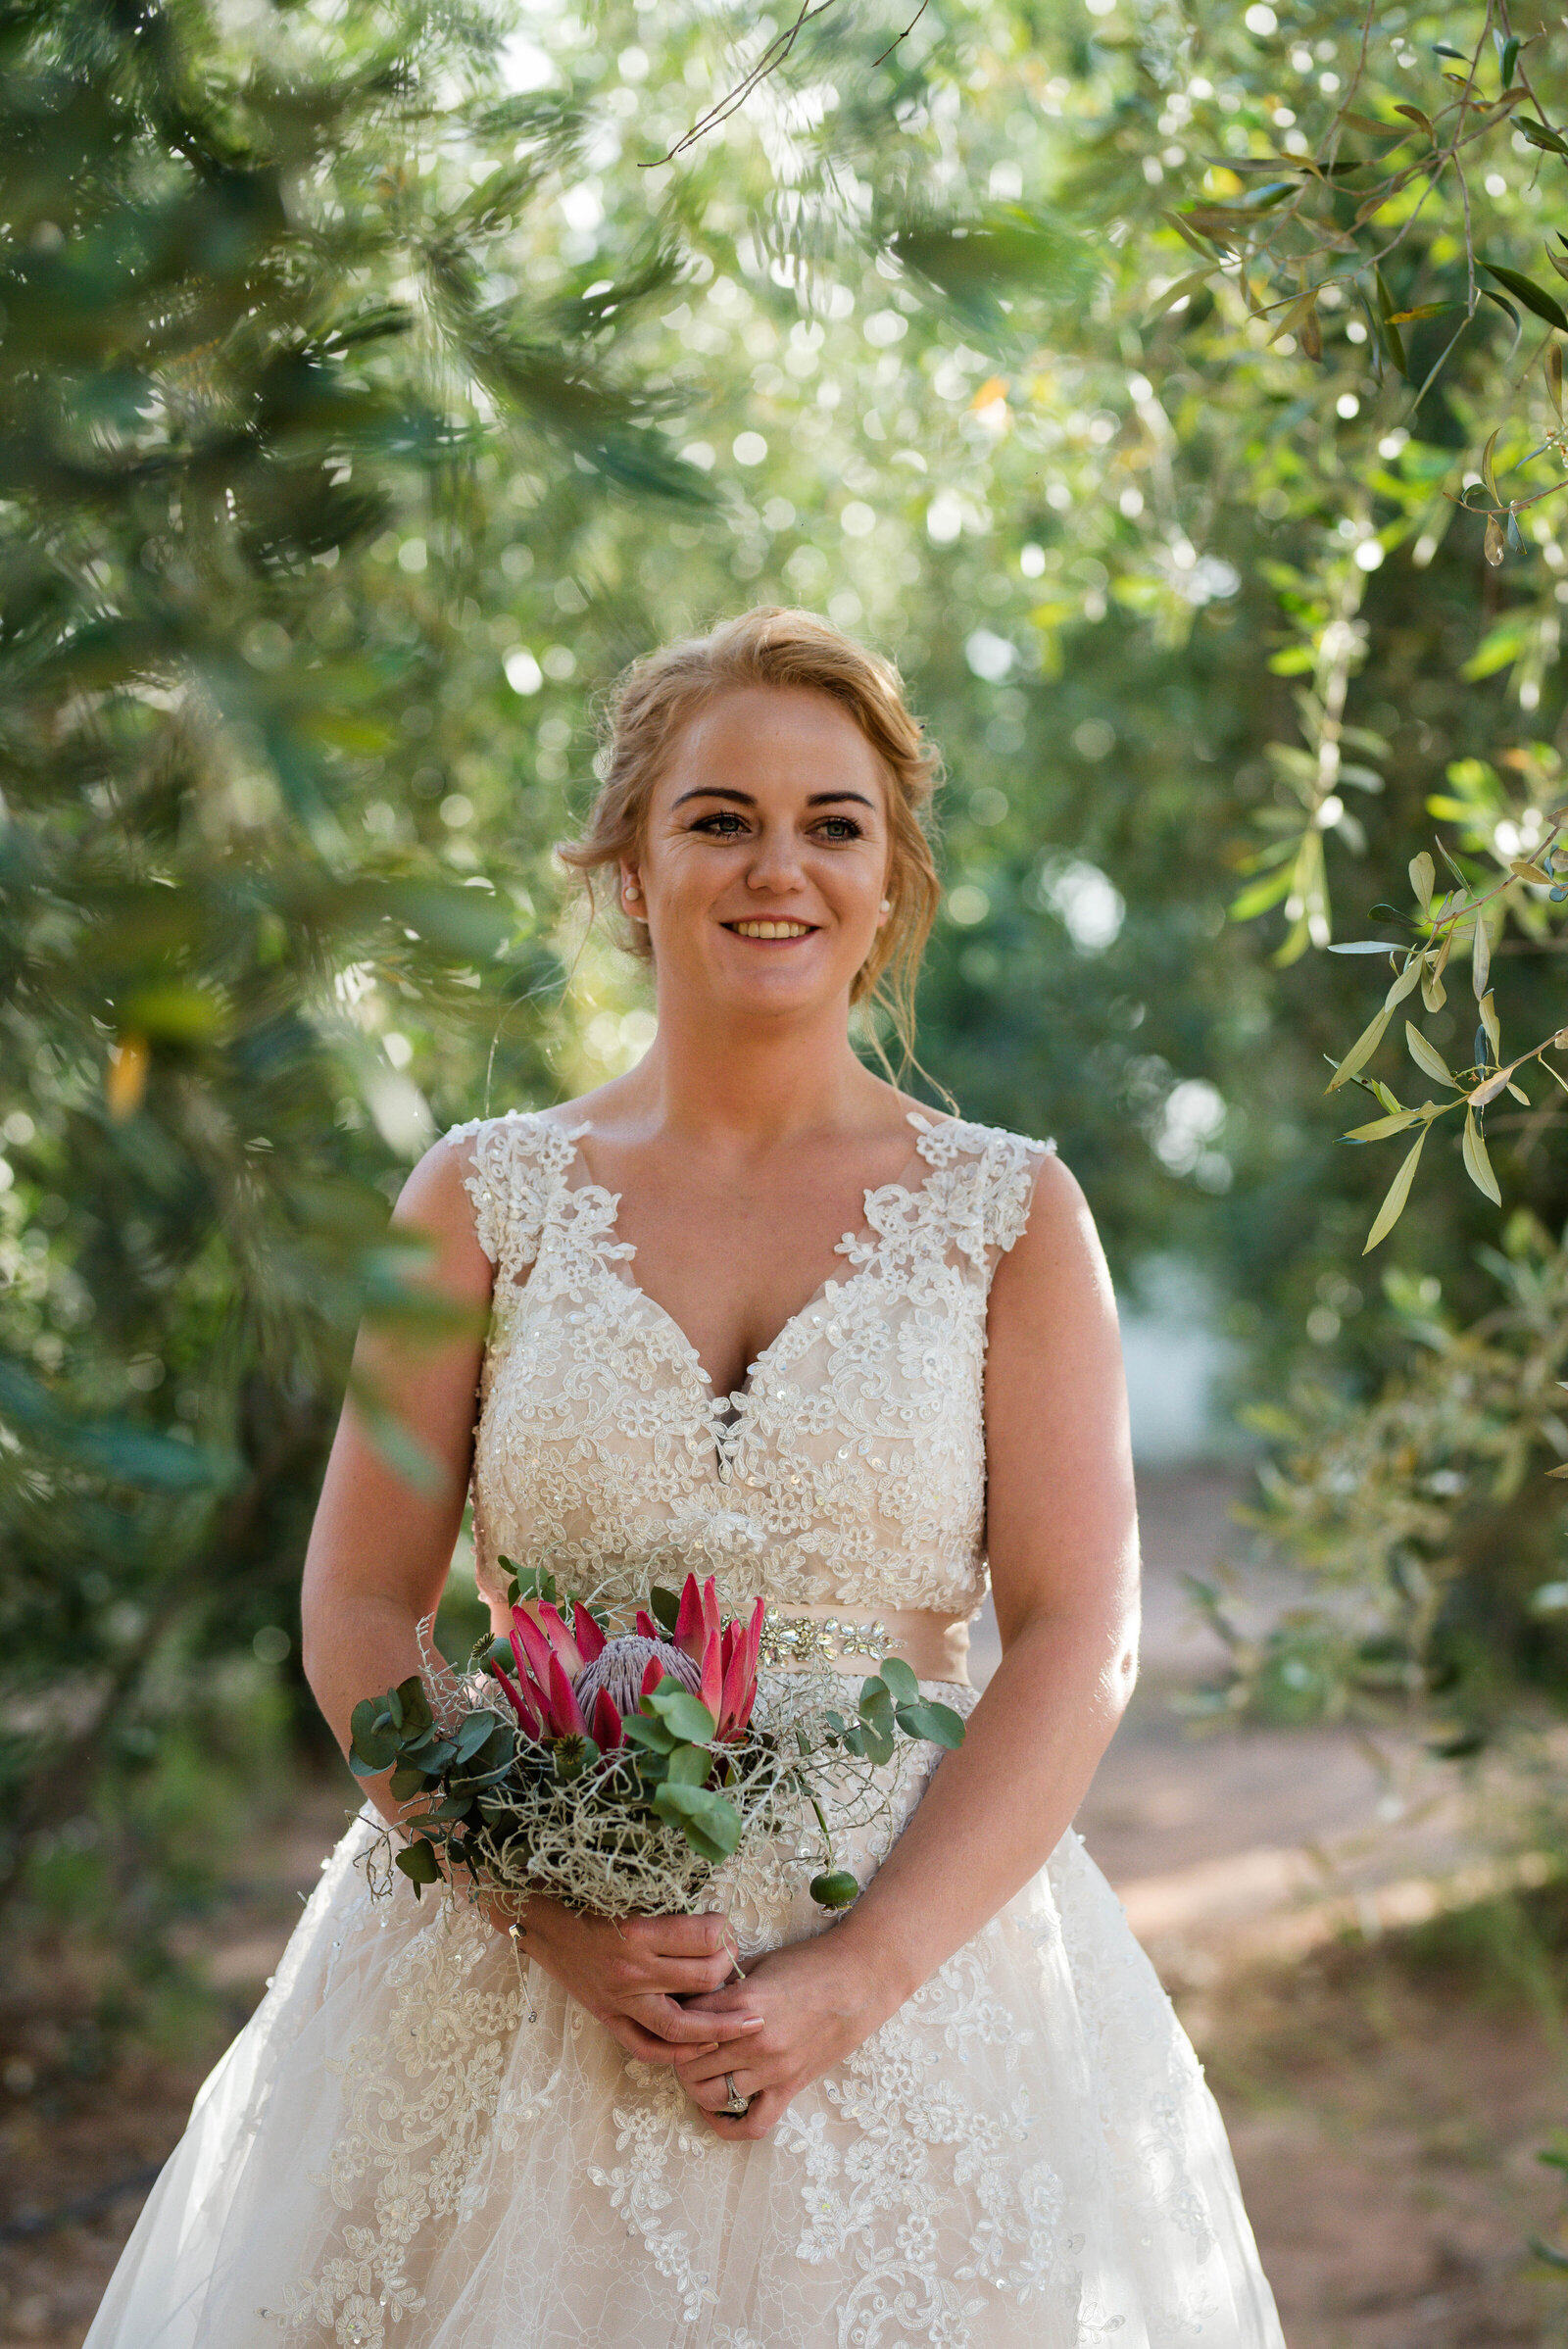 Wedding Photographer + Cape Town venue +Elri Photography+ Weddingdress (20)